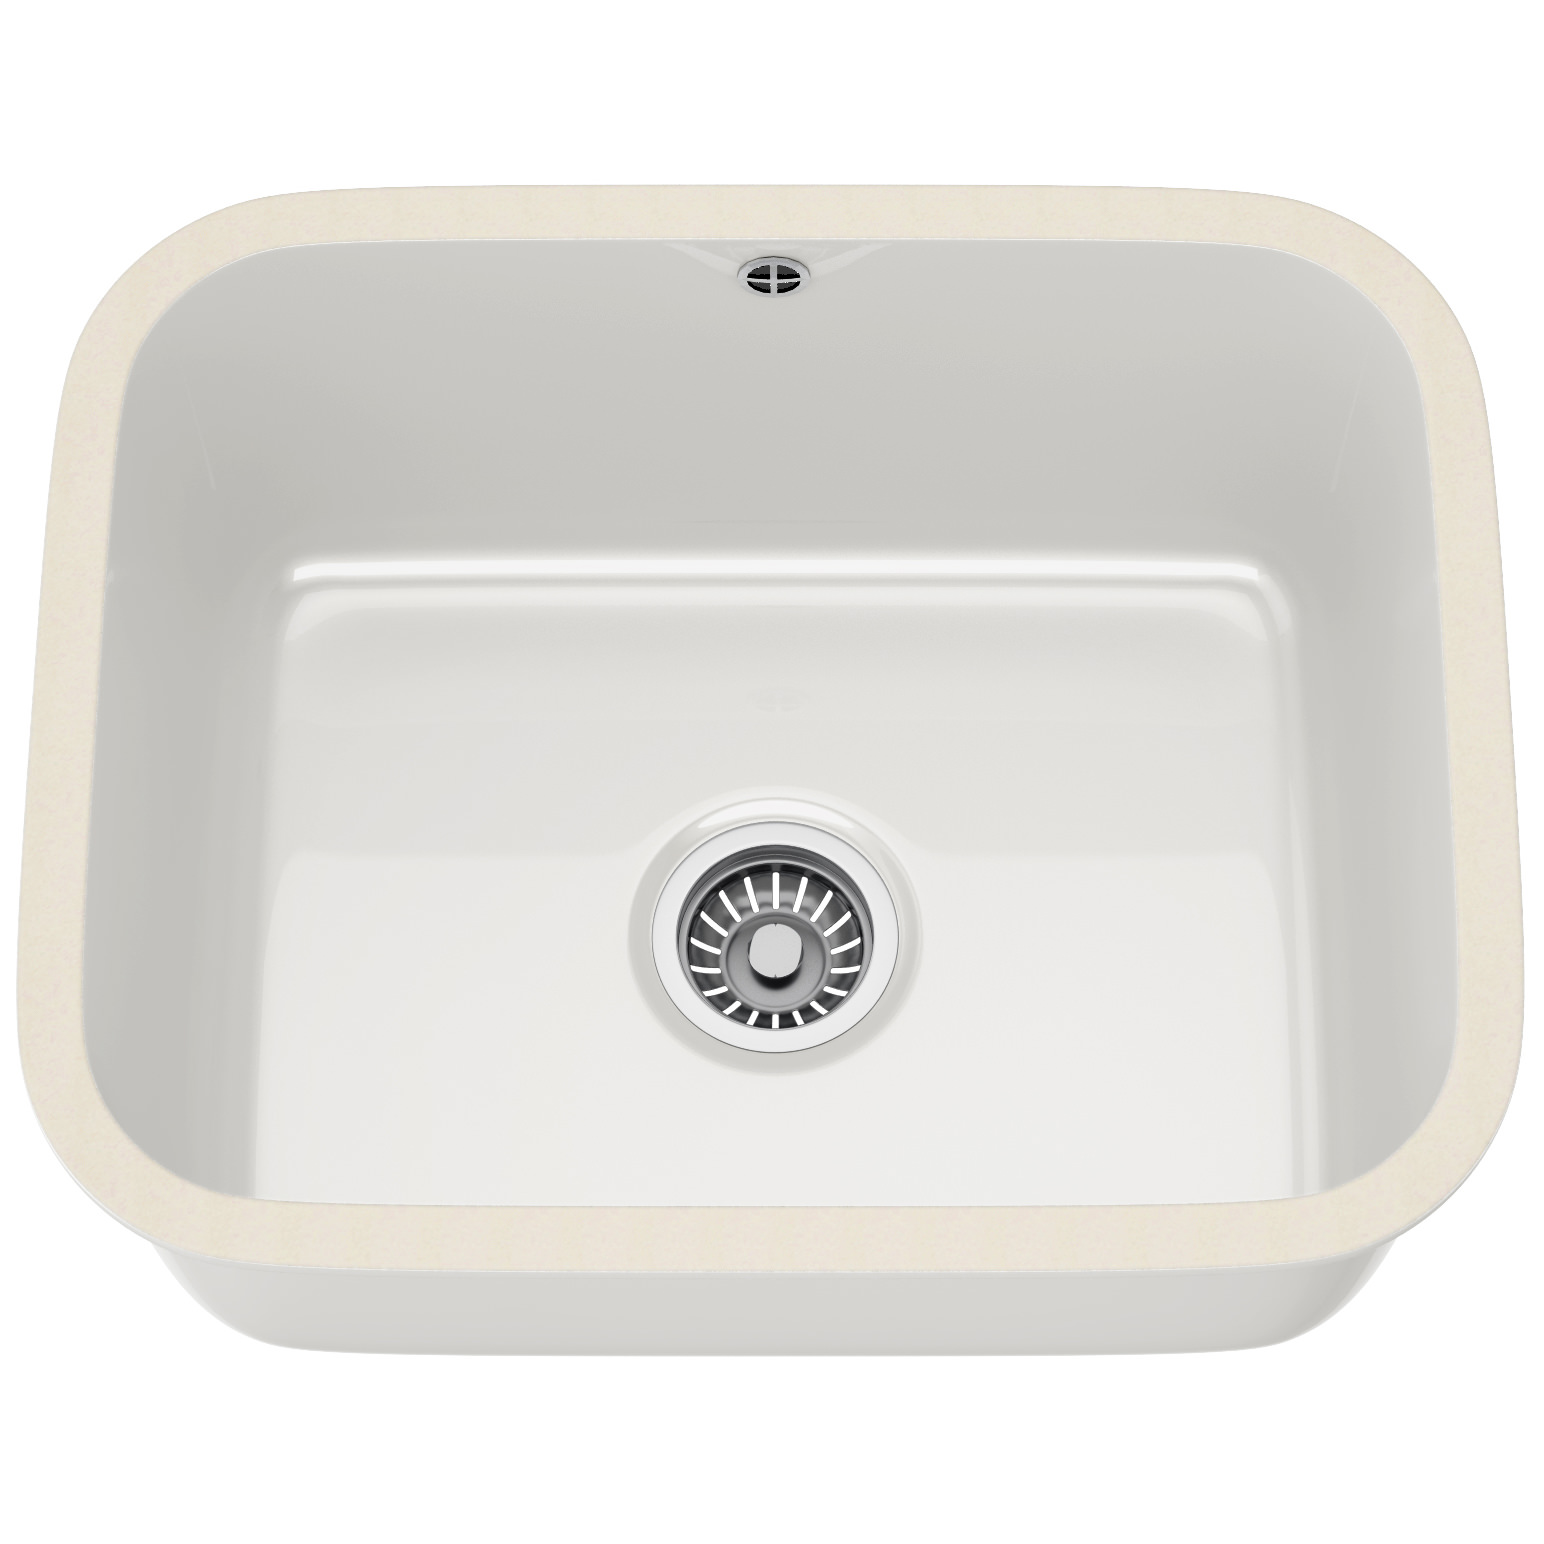 Ceramic Kitchen Sink Franke V And B Vbk 110 50 Ceramic 1 Bowl White